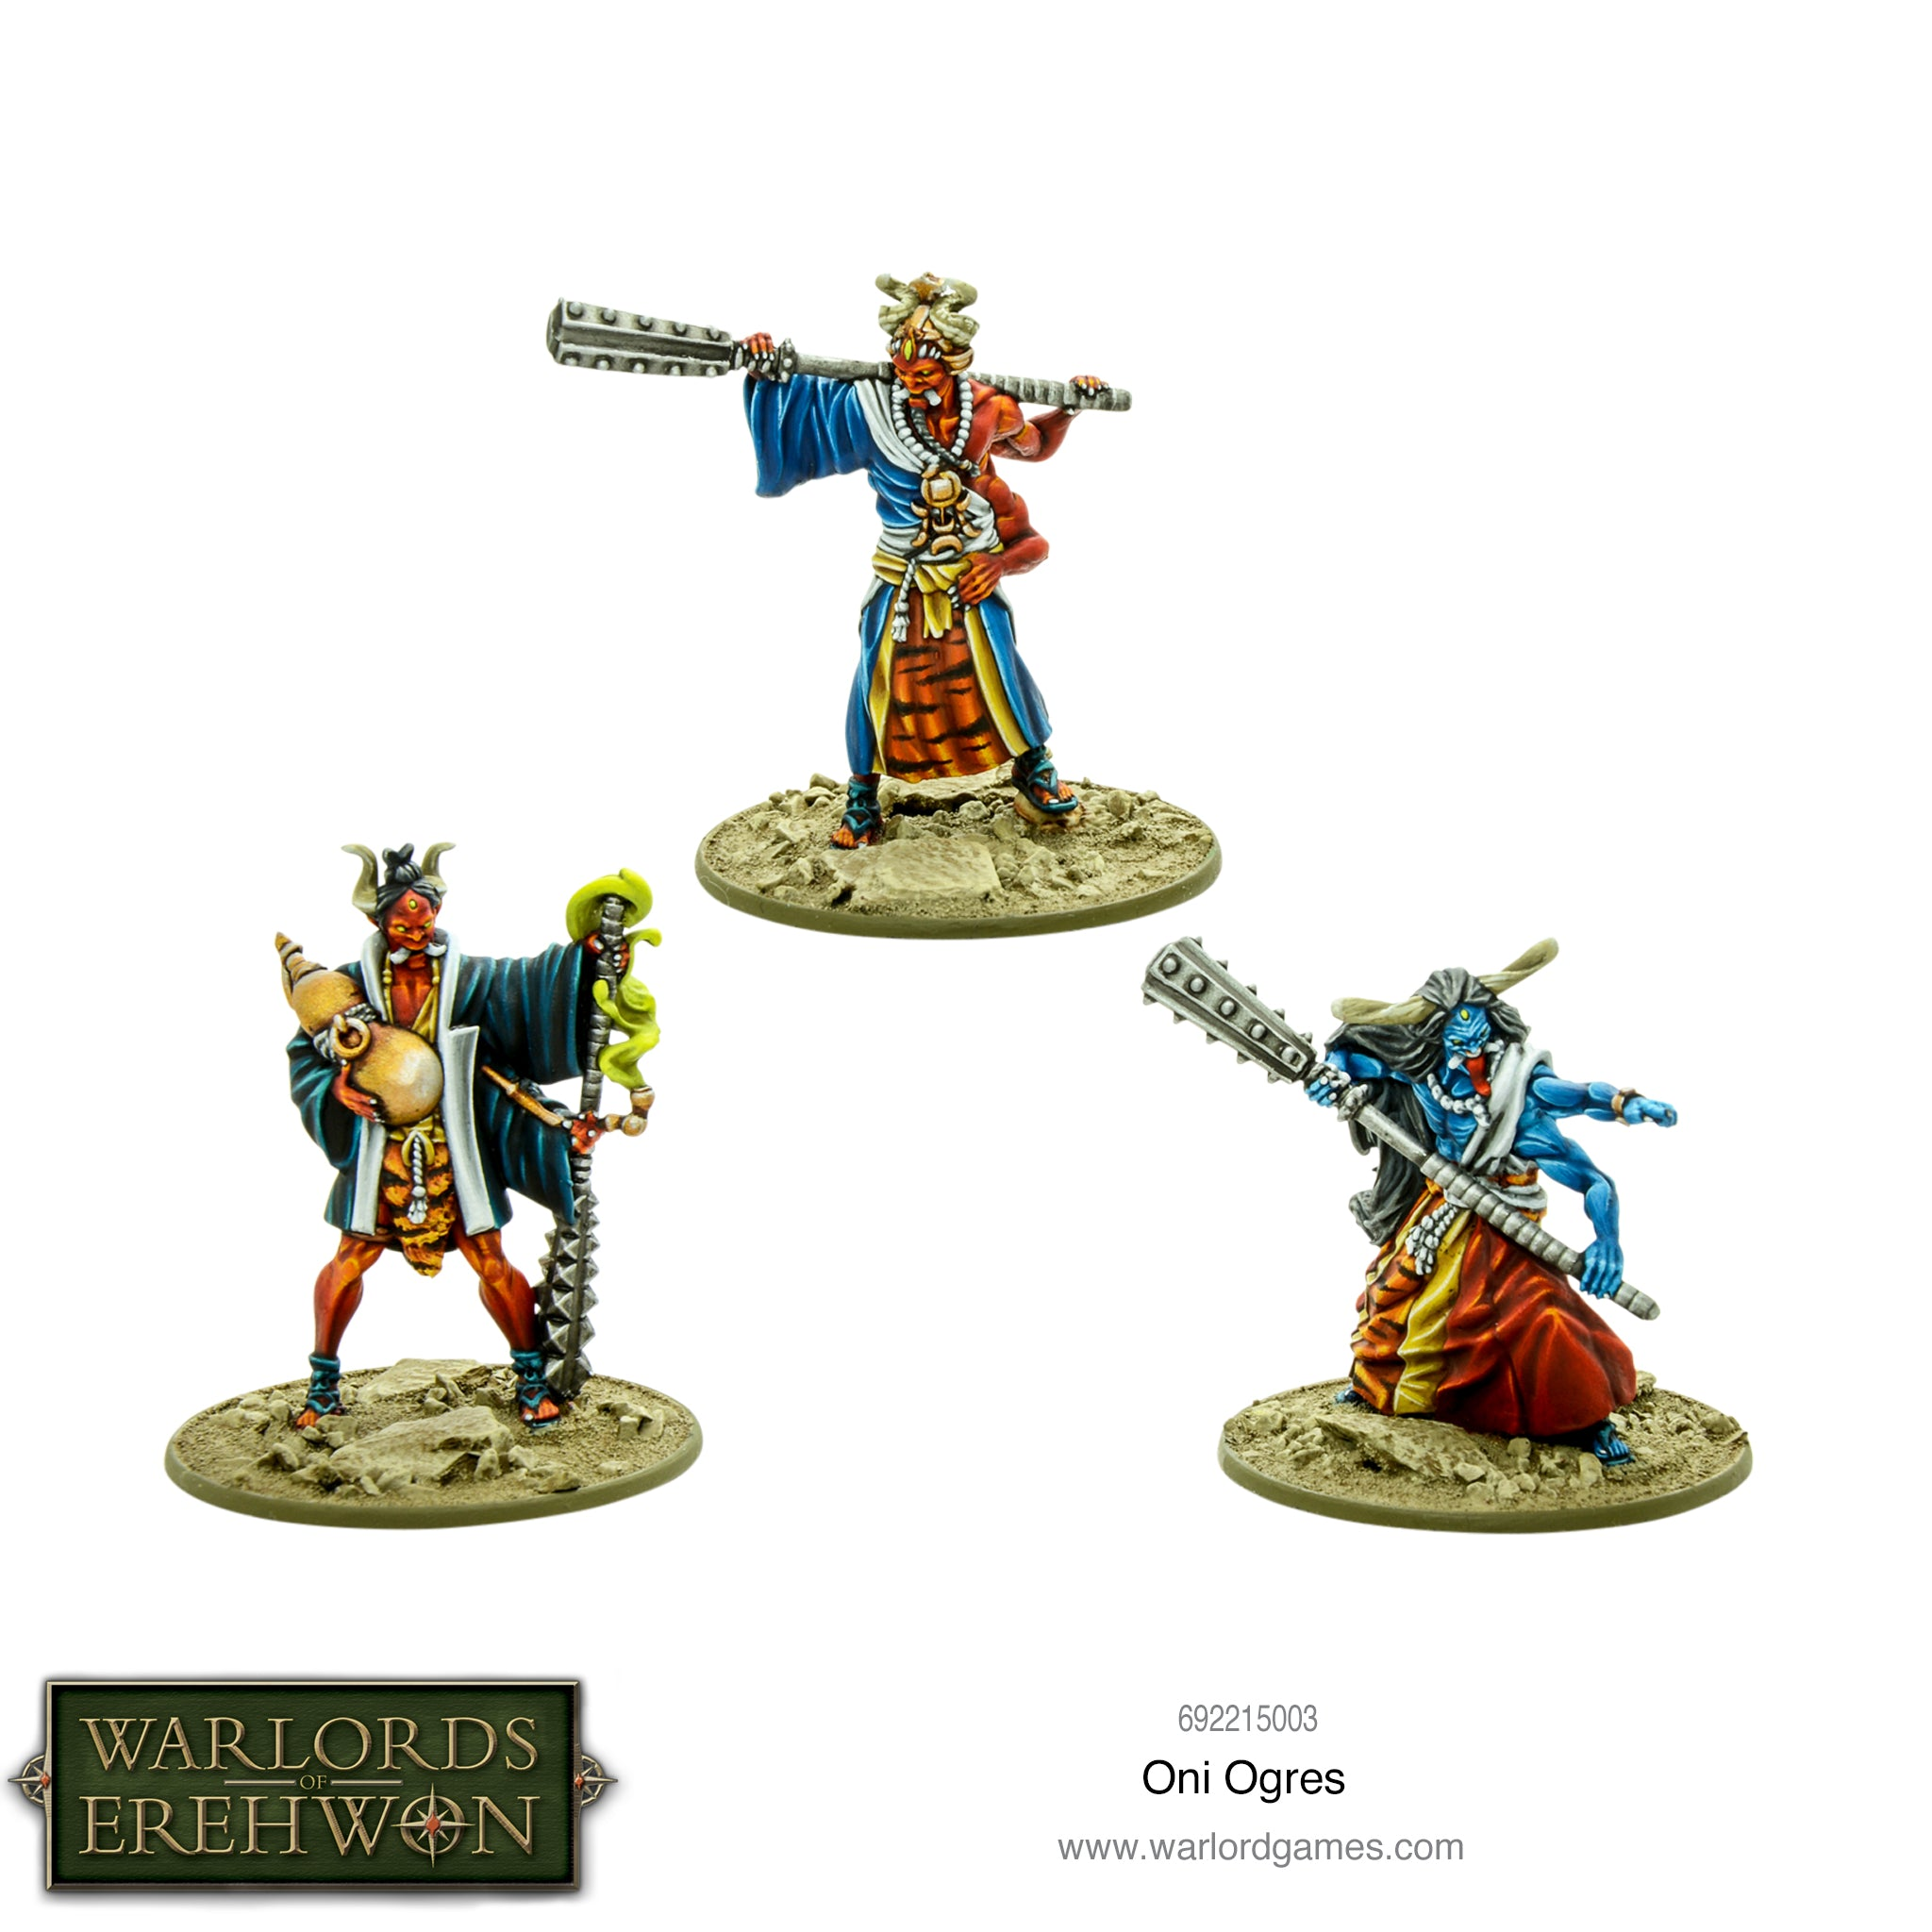 Warlords of Erehwon: Oni Ogres